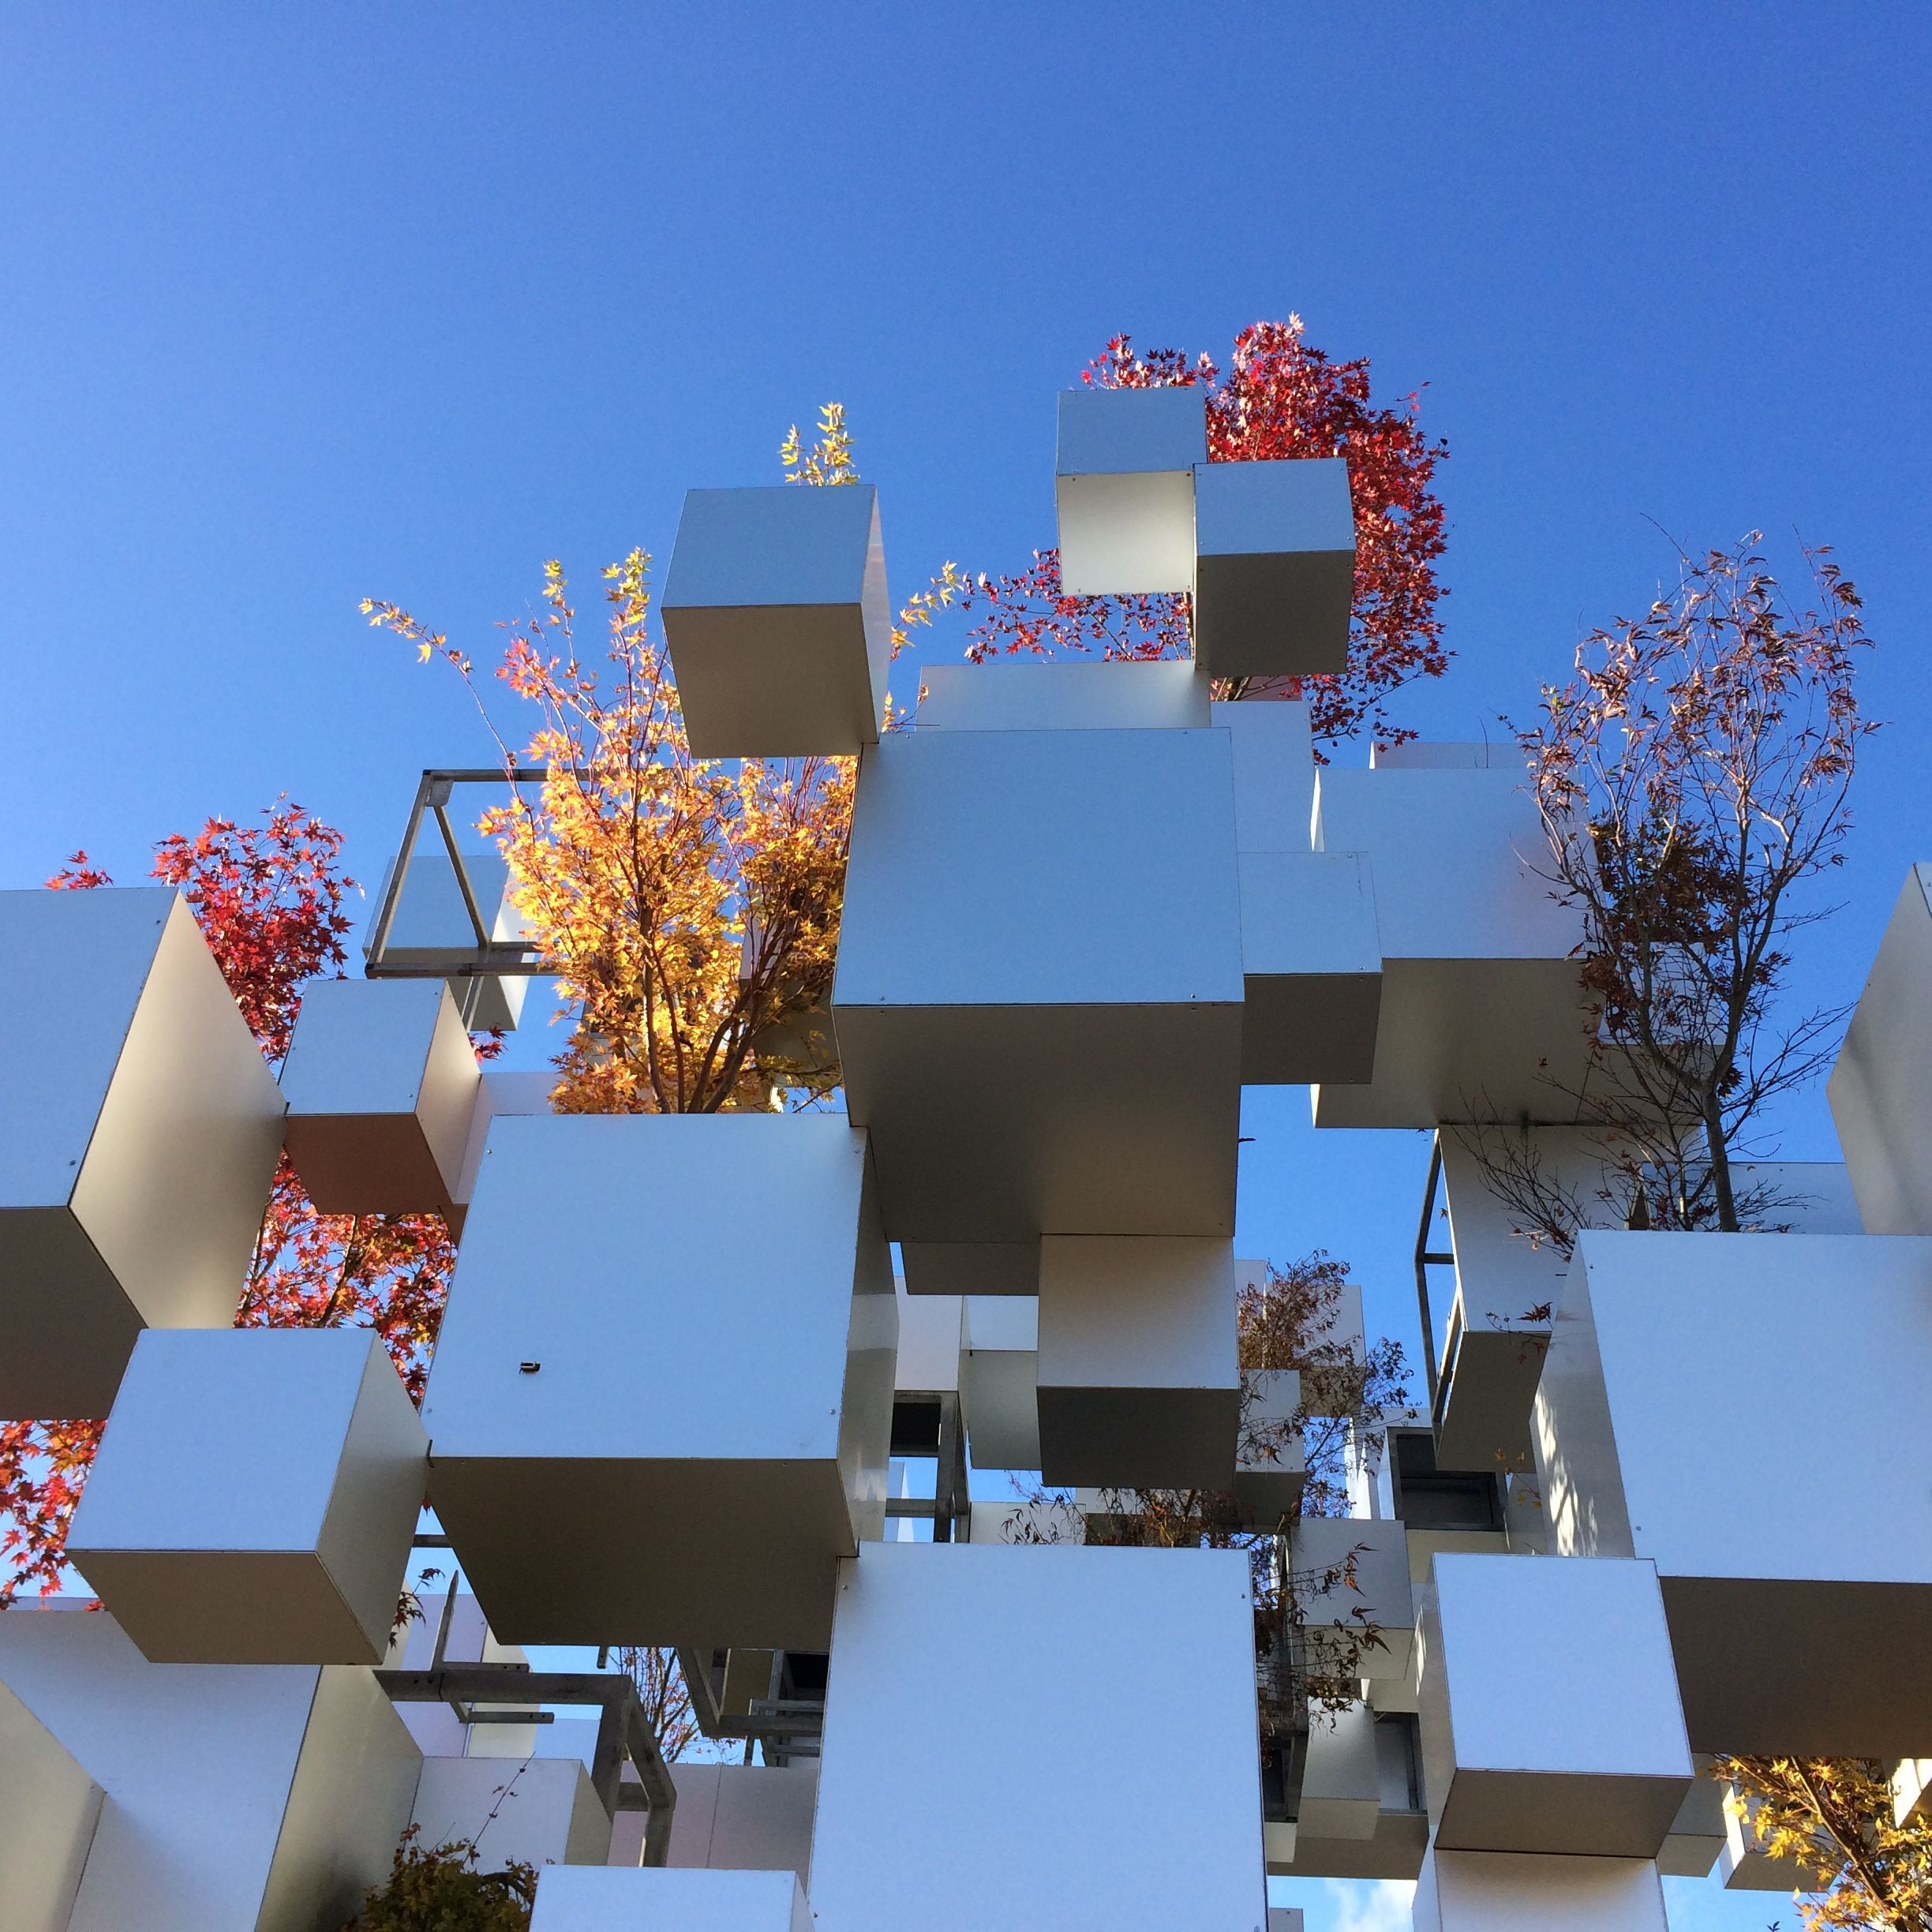 Japanese architect Sou Fujimoto has created an installation in